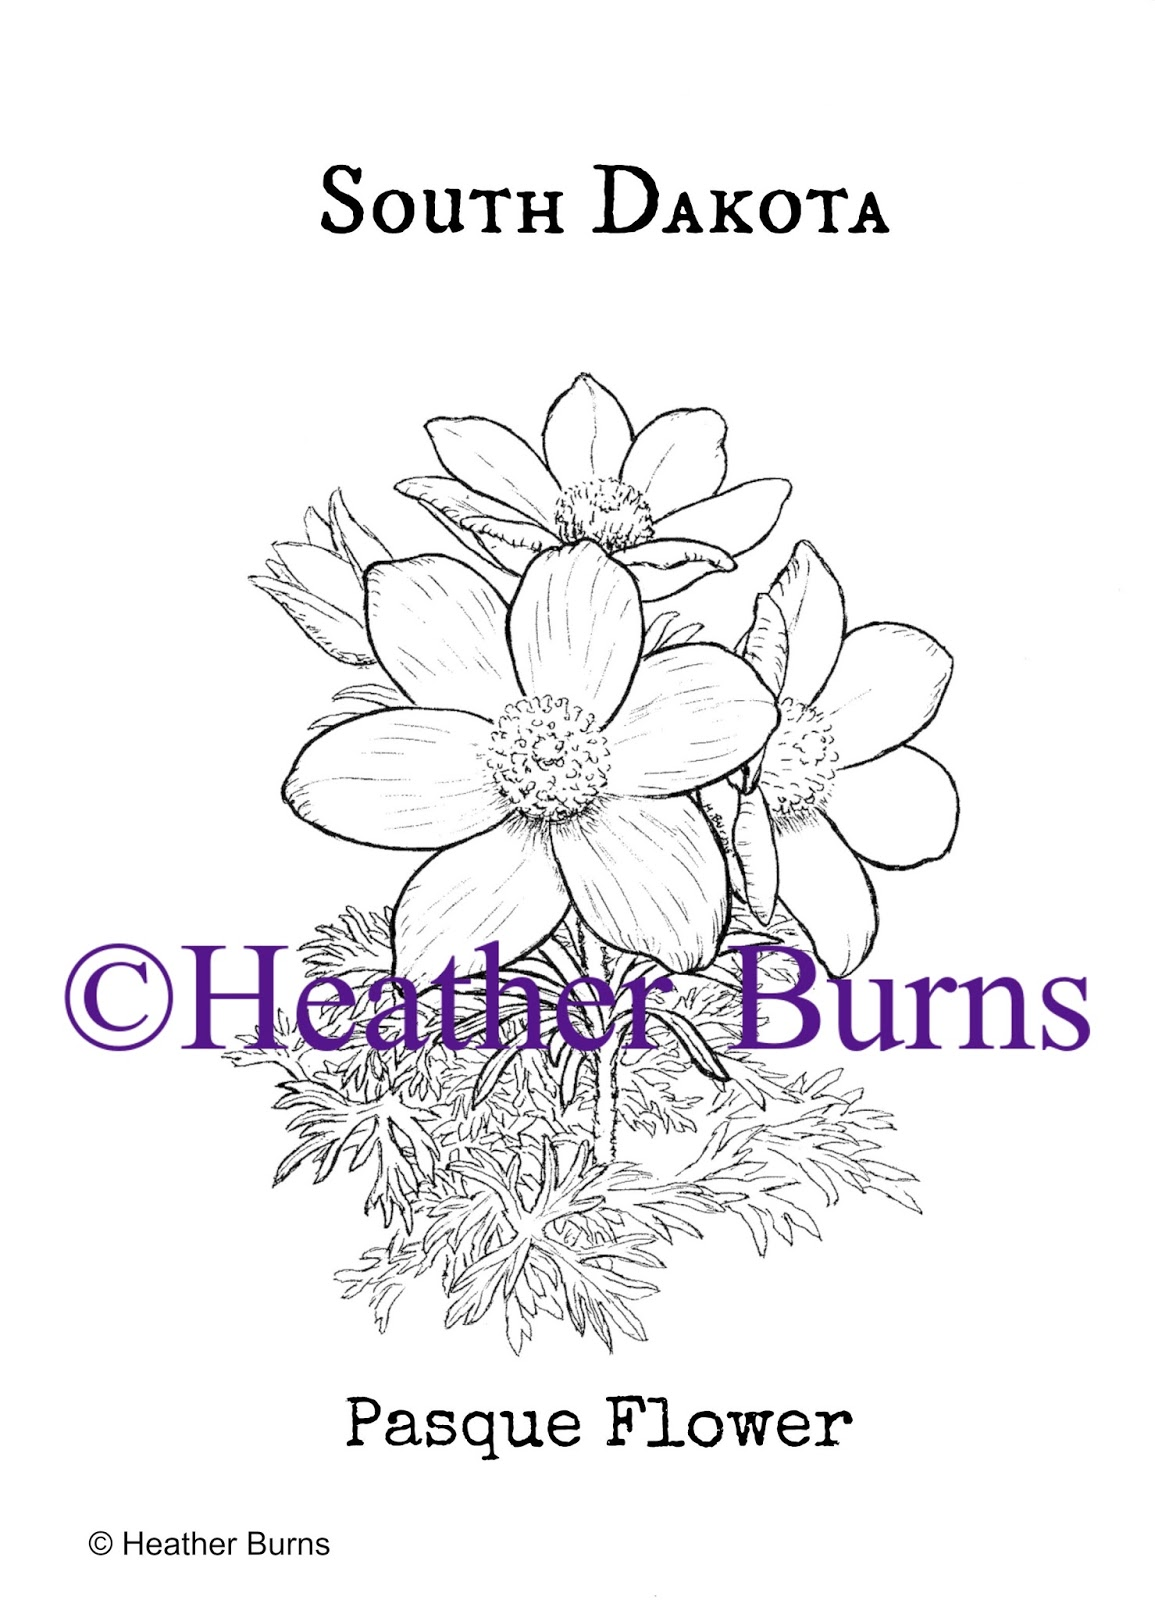 State Flower Coloring Book South Dakota Pasque Flower Coloring Page